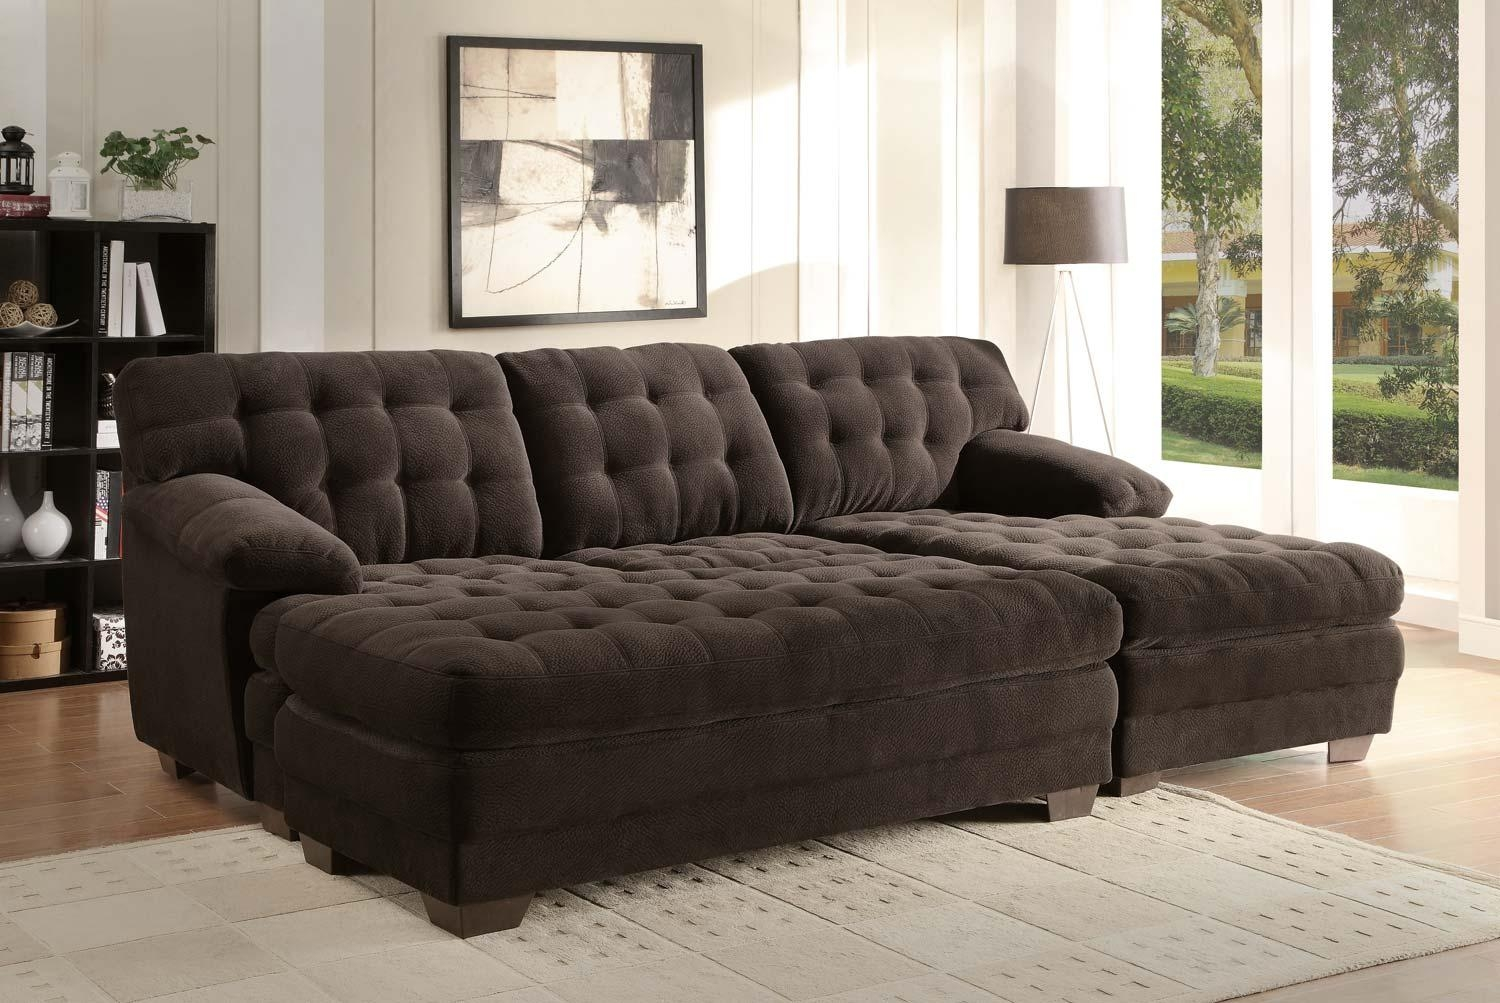 Sectional Sofa Couch Reversible Chaise Micro Suede Chocolate In Sectional Sofa With Large Ottoman (Image 9 of 20)